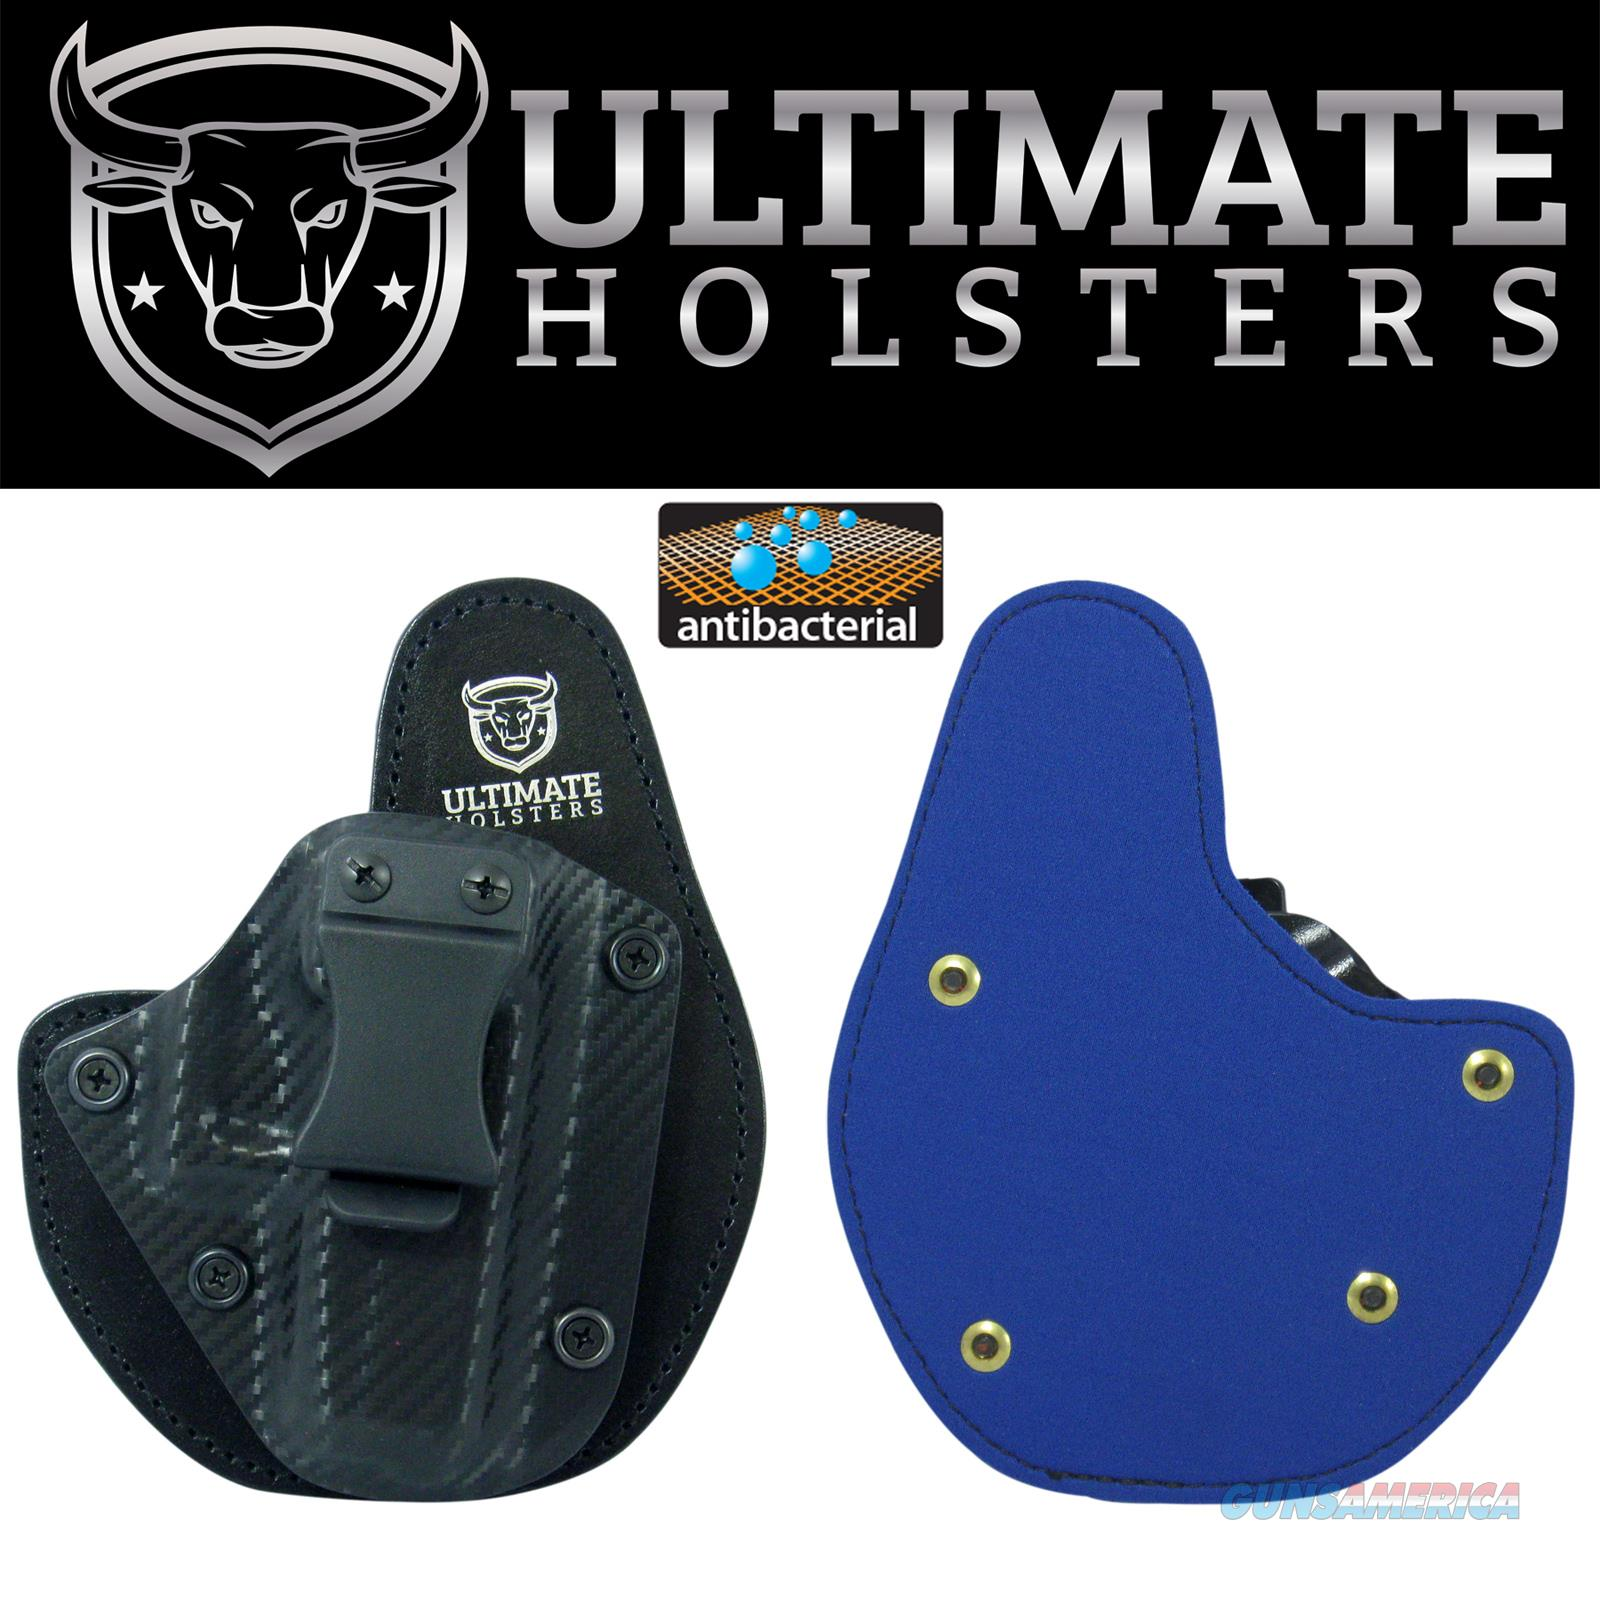 Walther P22 Cloud Tuck Rapid Hybrid Holster- Most Comfortable Holster- Antimicrobial Padding   Non-Guns > Holsters and Gunleather > Concealed Carry